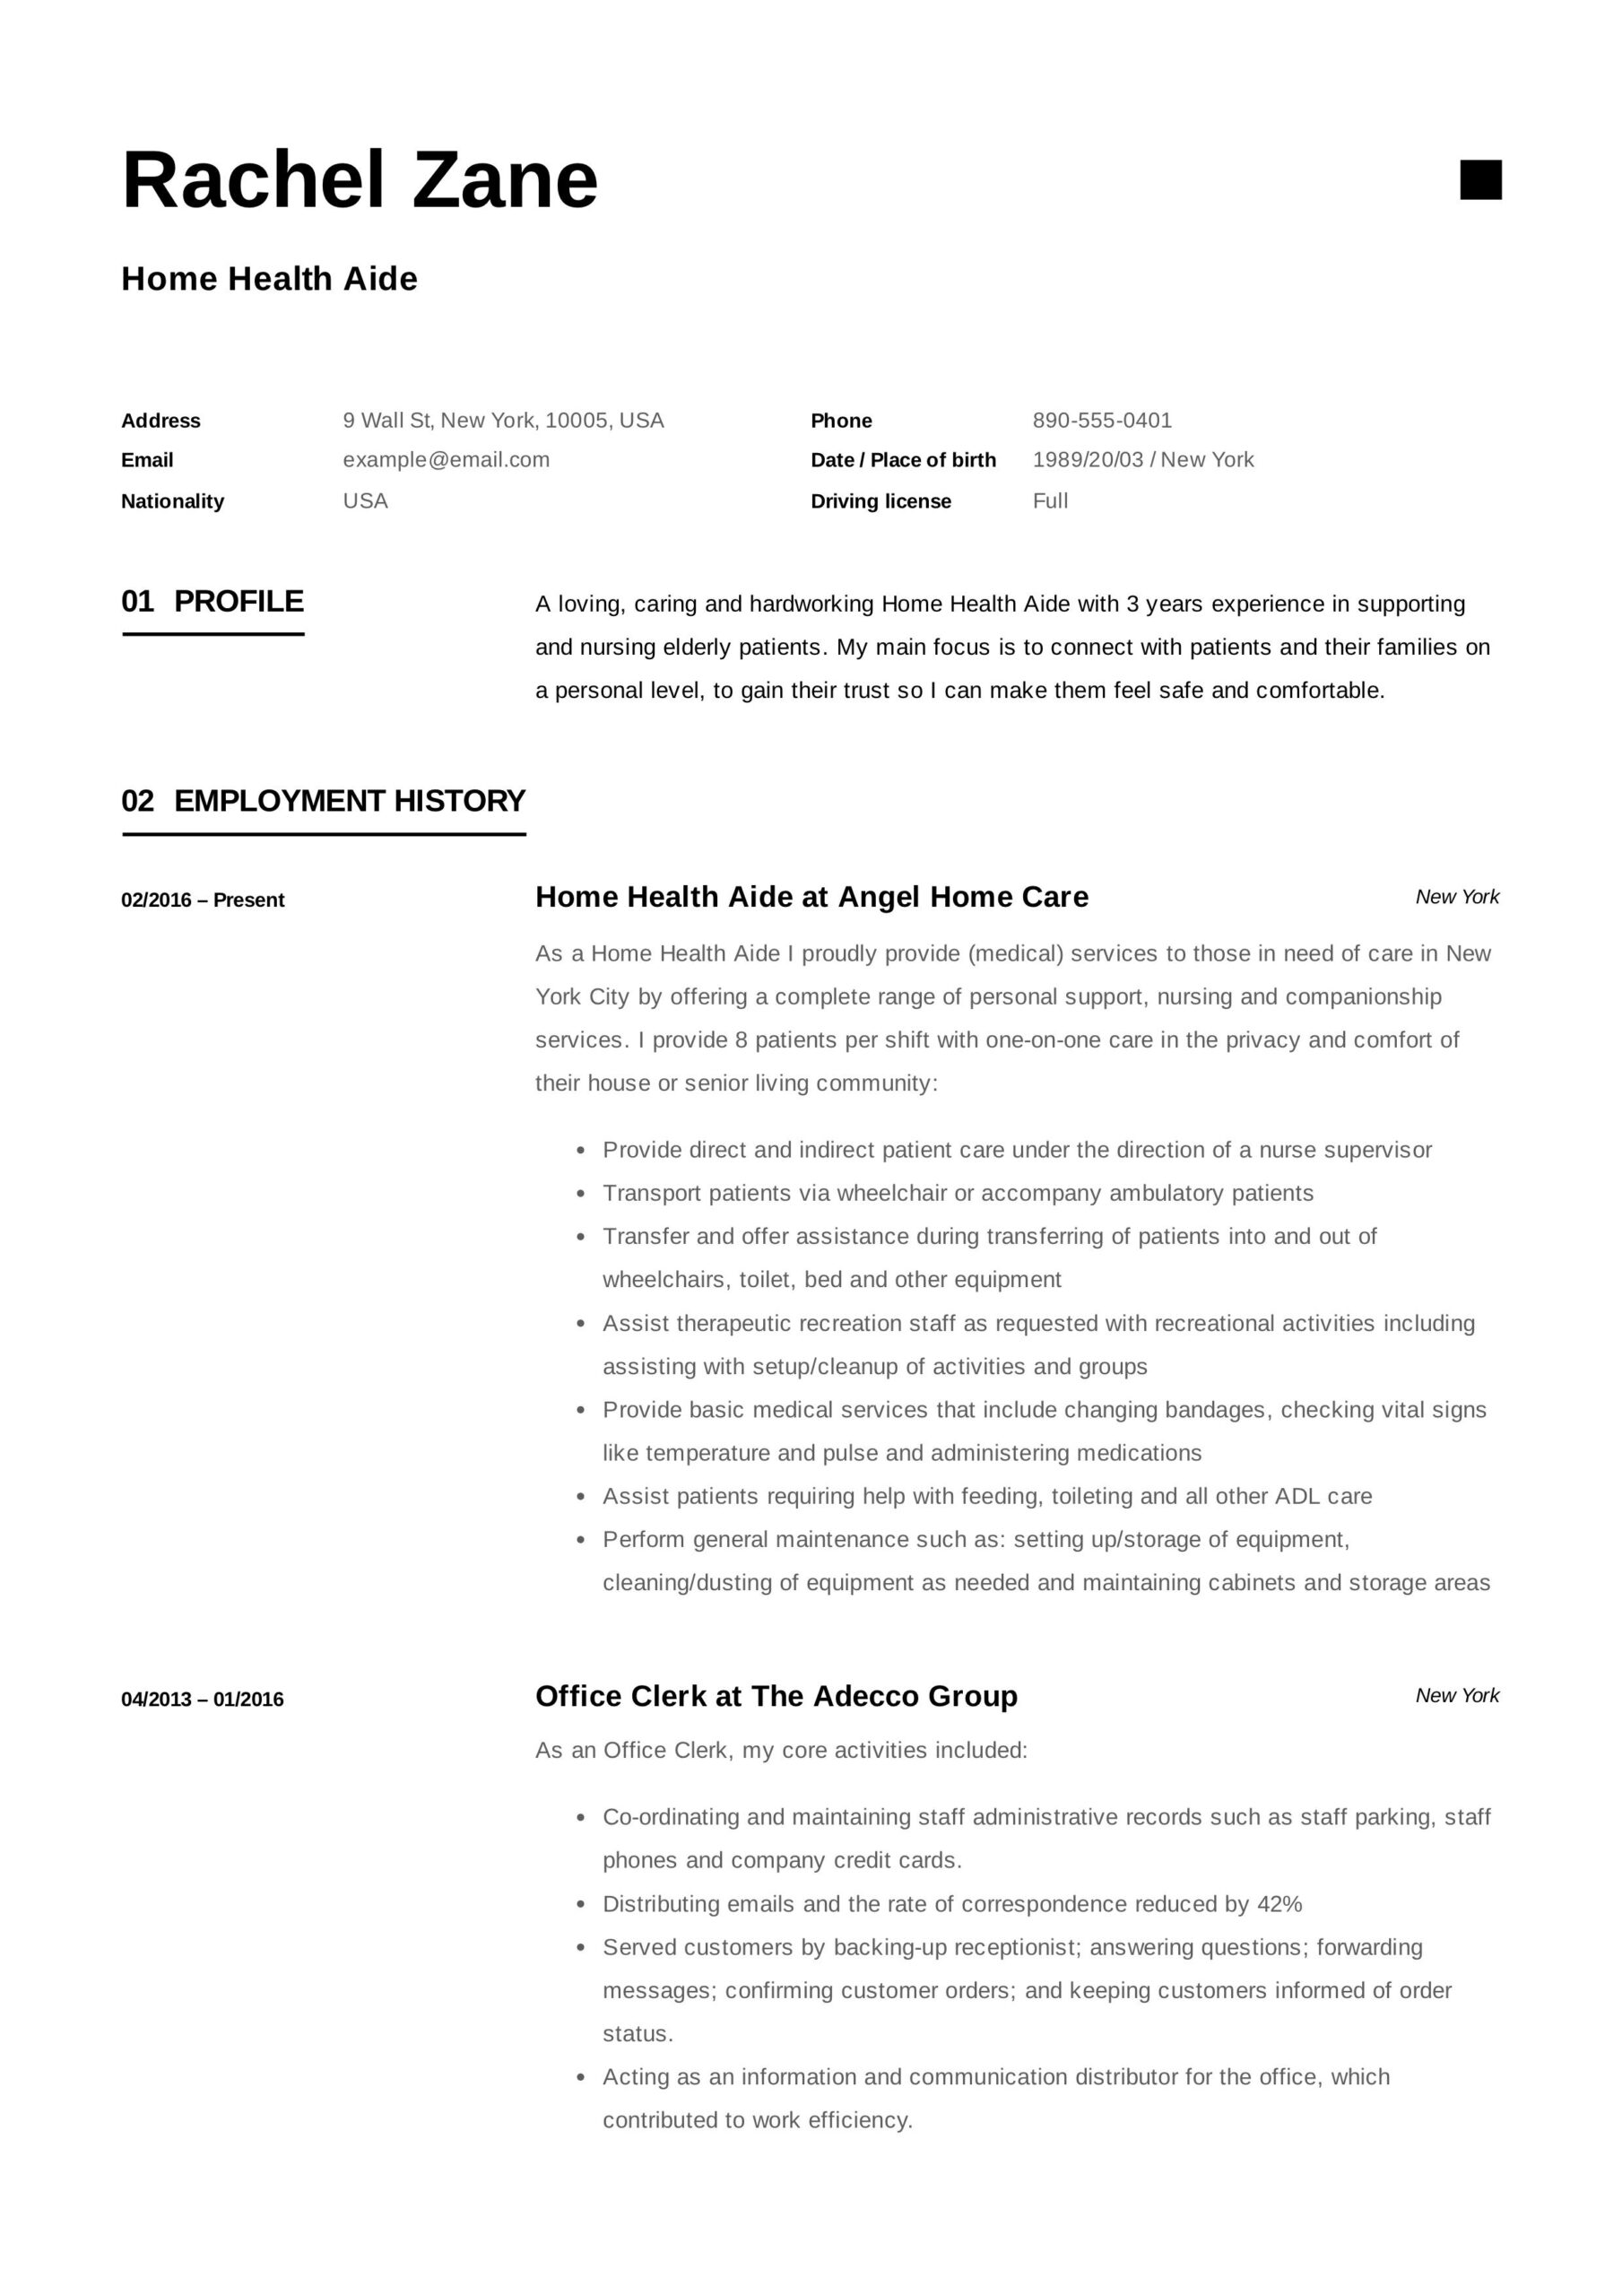 home health aide resume template in graphic design examples dental school application for Resume Home Health Aide Resume